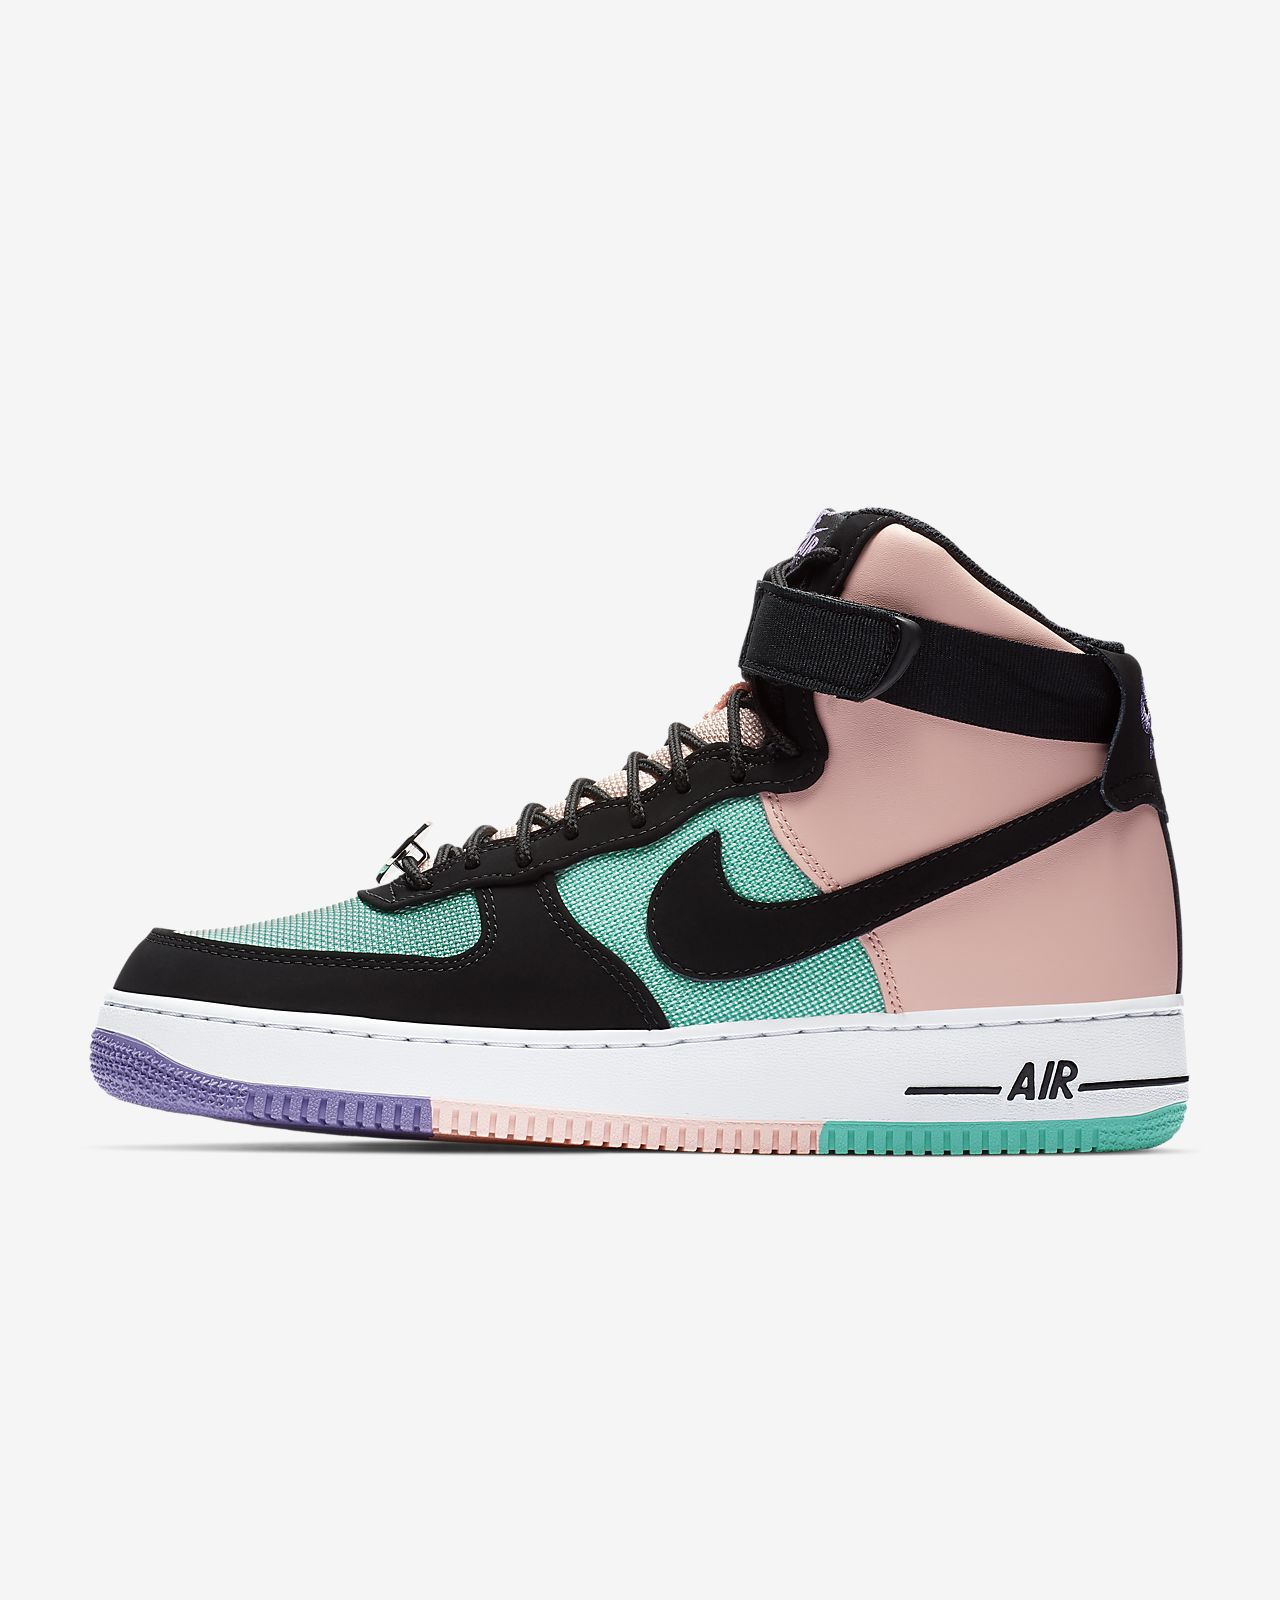 best website 67e22 35a31 ... Nike Air Force 1 High 07 LV8 Mens Shoe